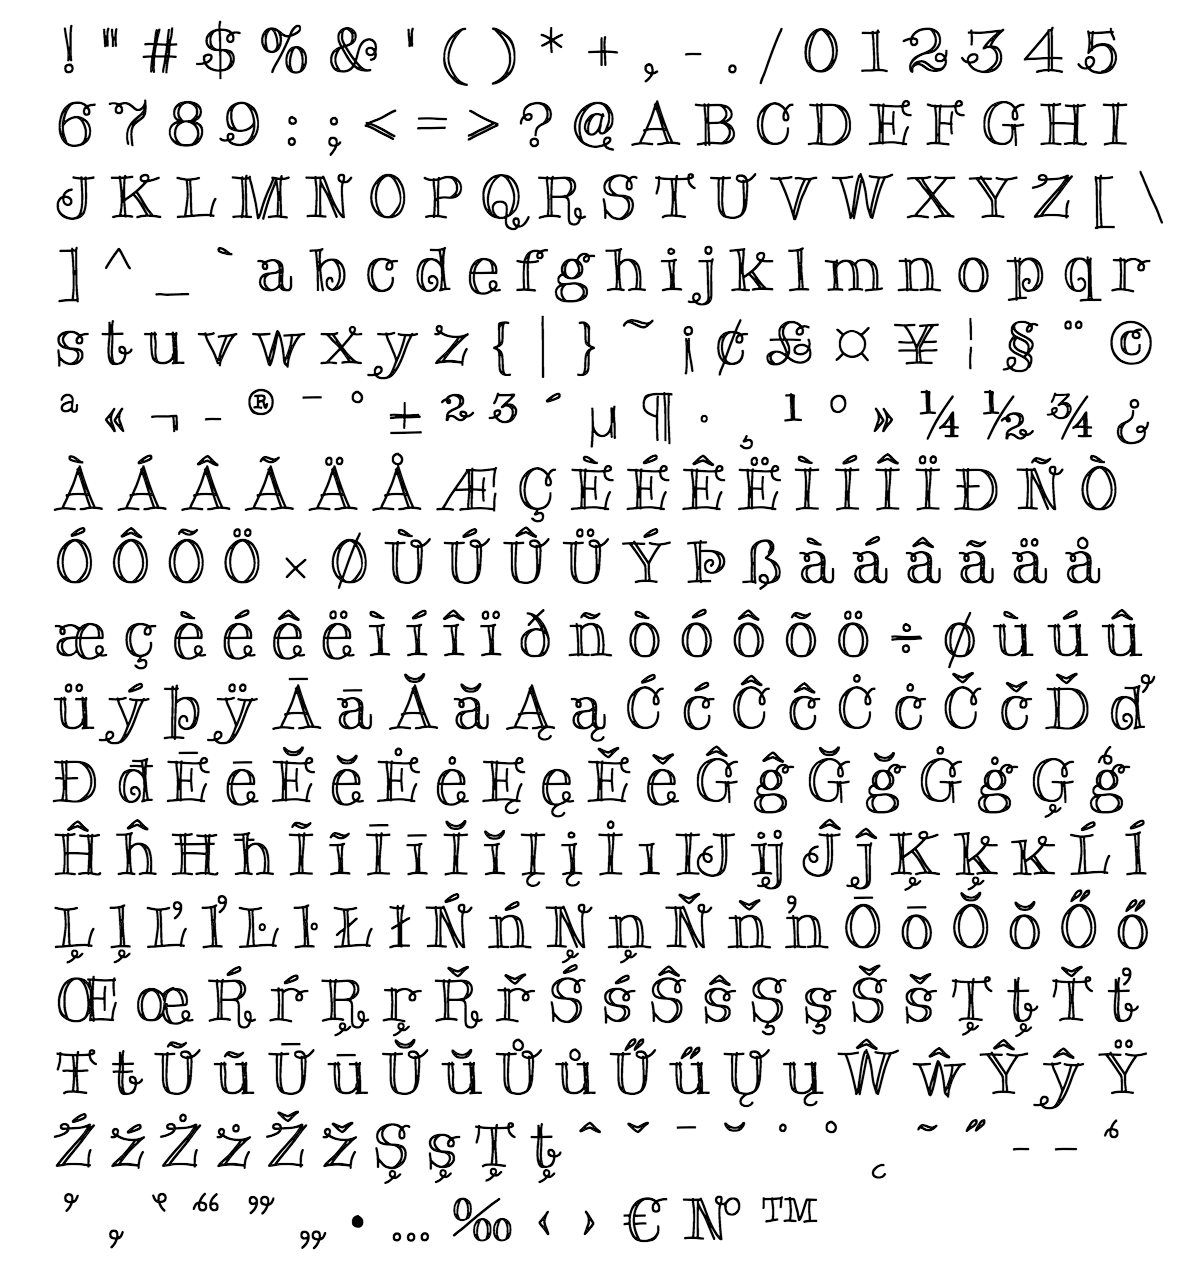 holy roller font - complete character list